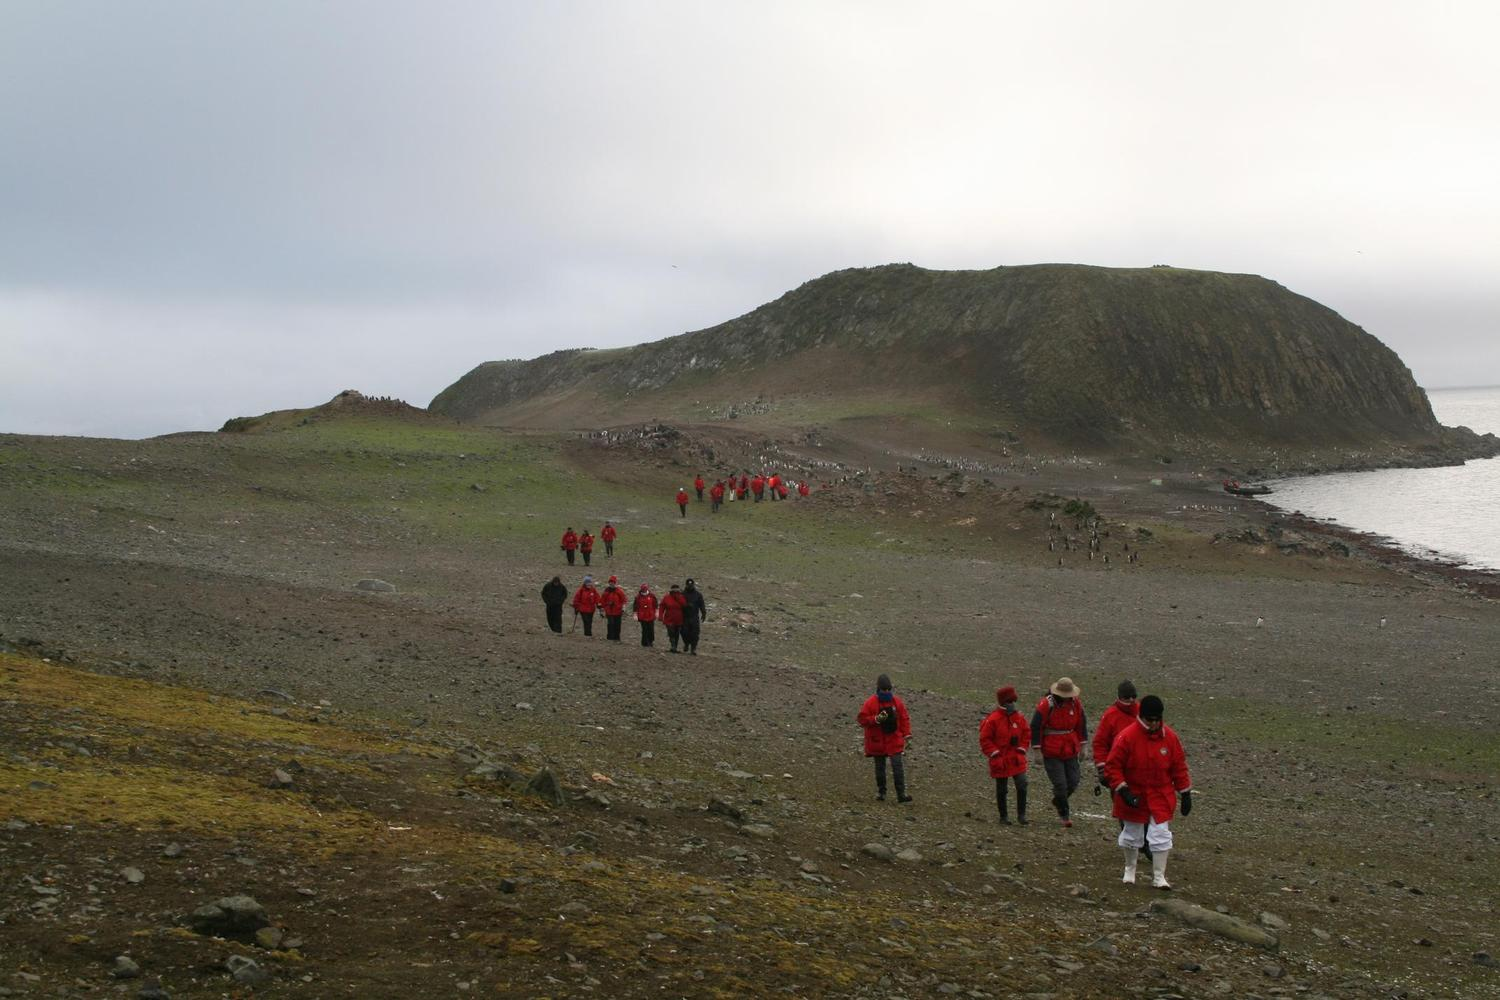 Walking across the South Shetland Islands